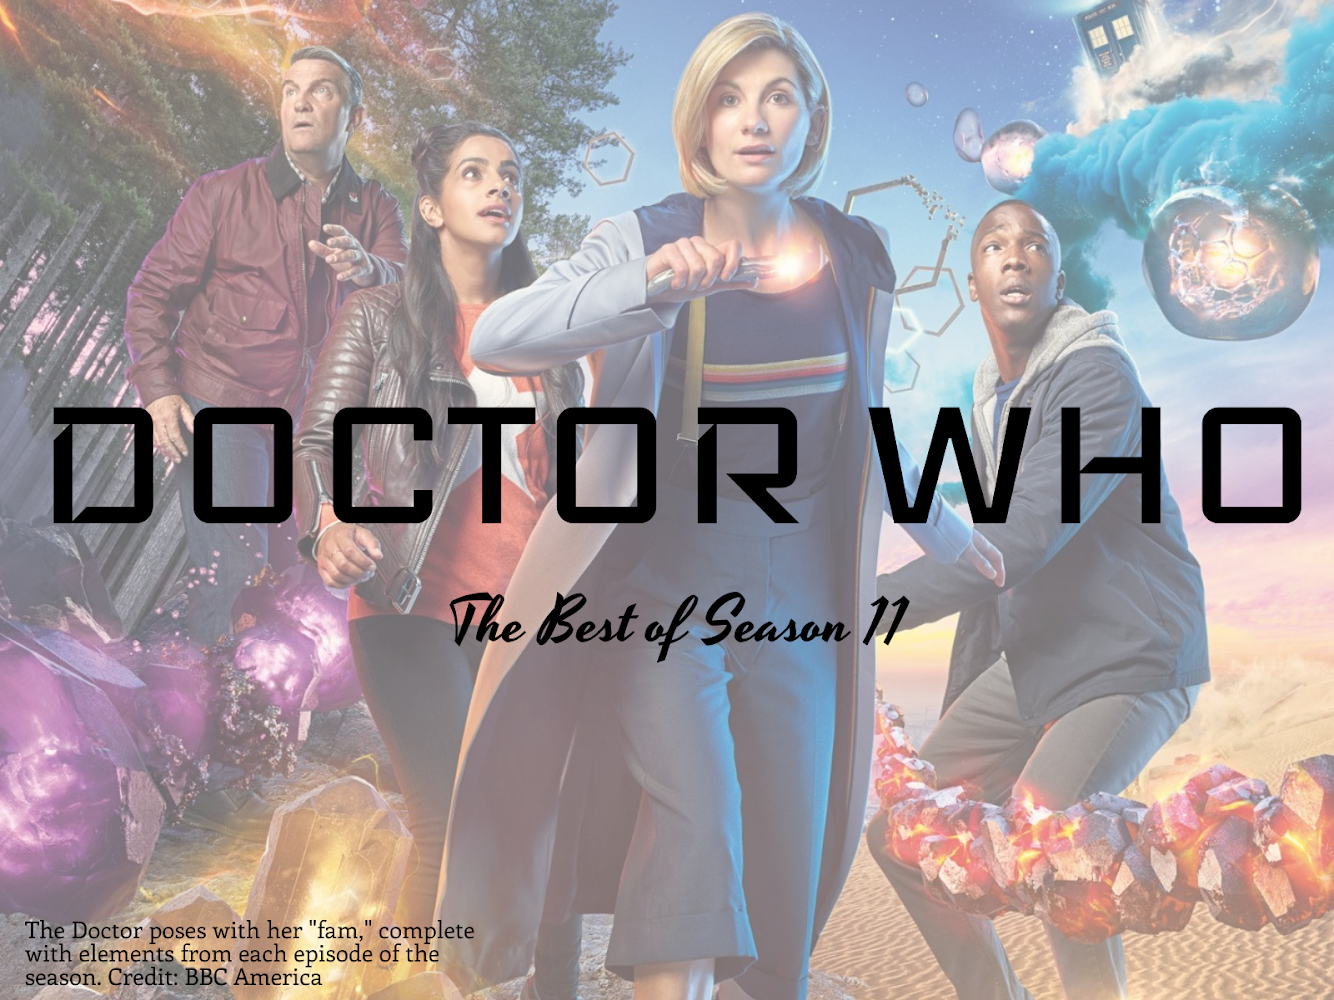 The Doctor poses with her